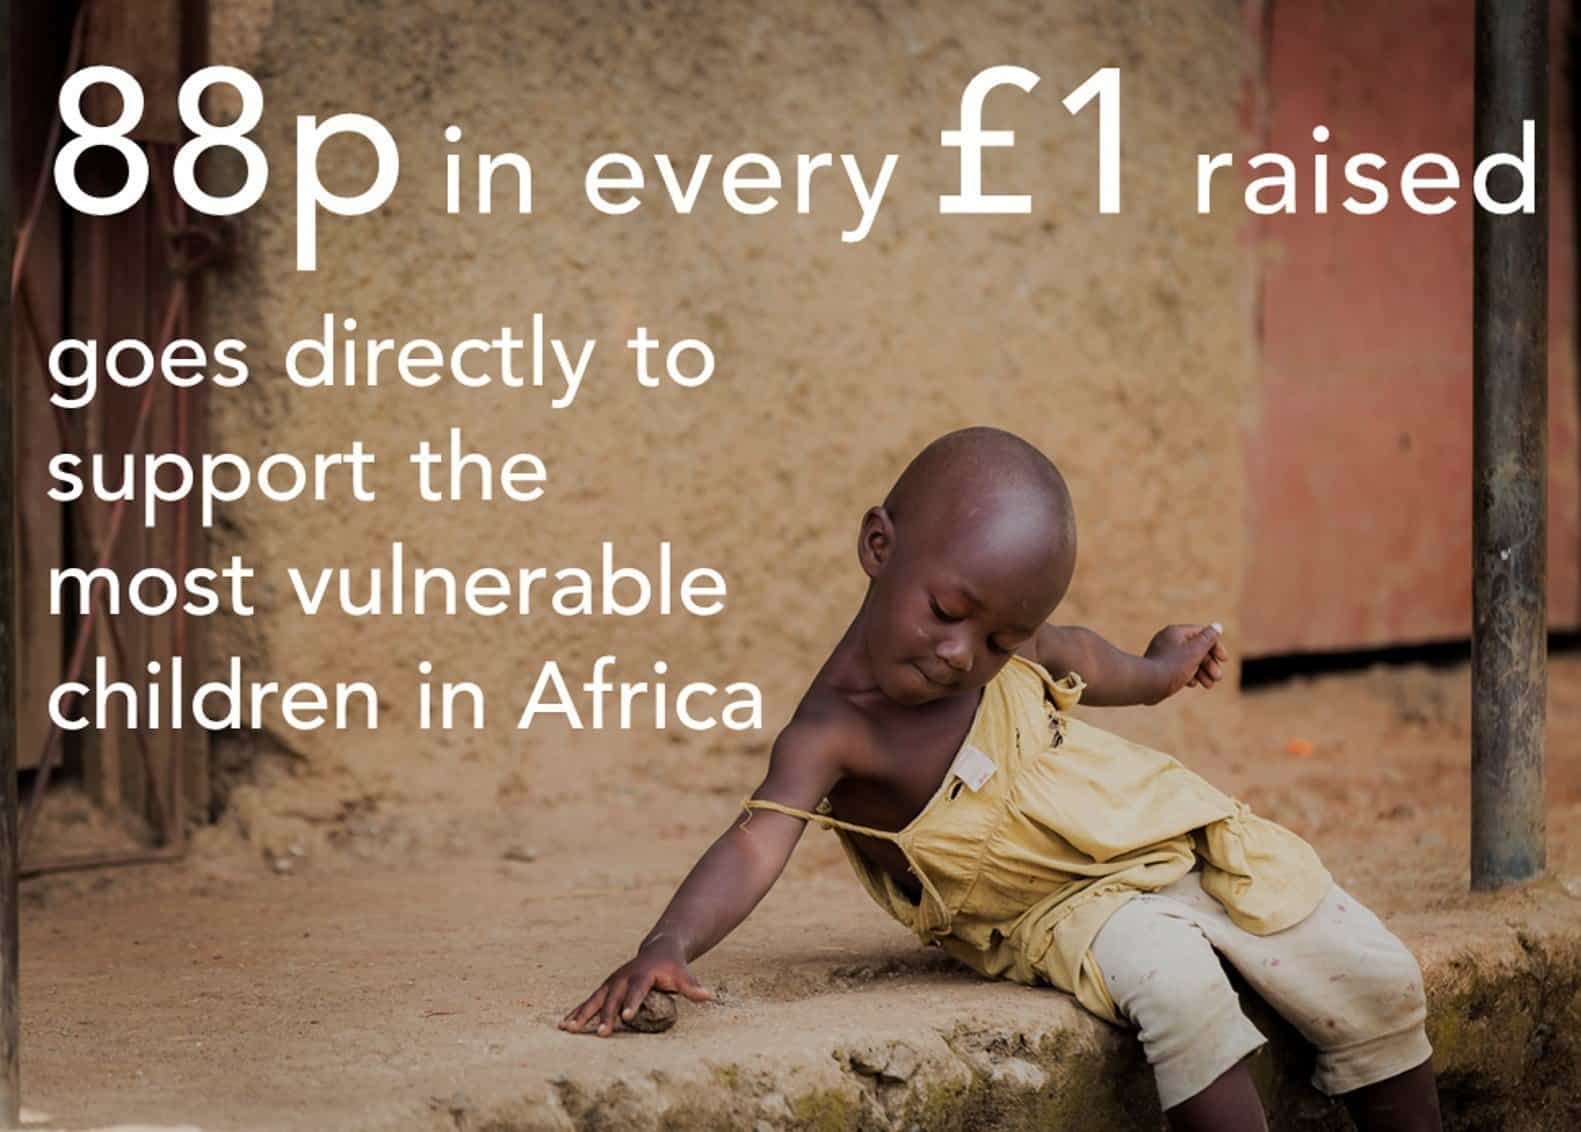 88p in every £1 raised goes directly to support the most vulnerable children in Africa